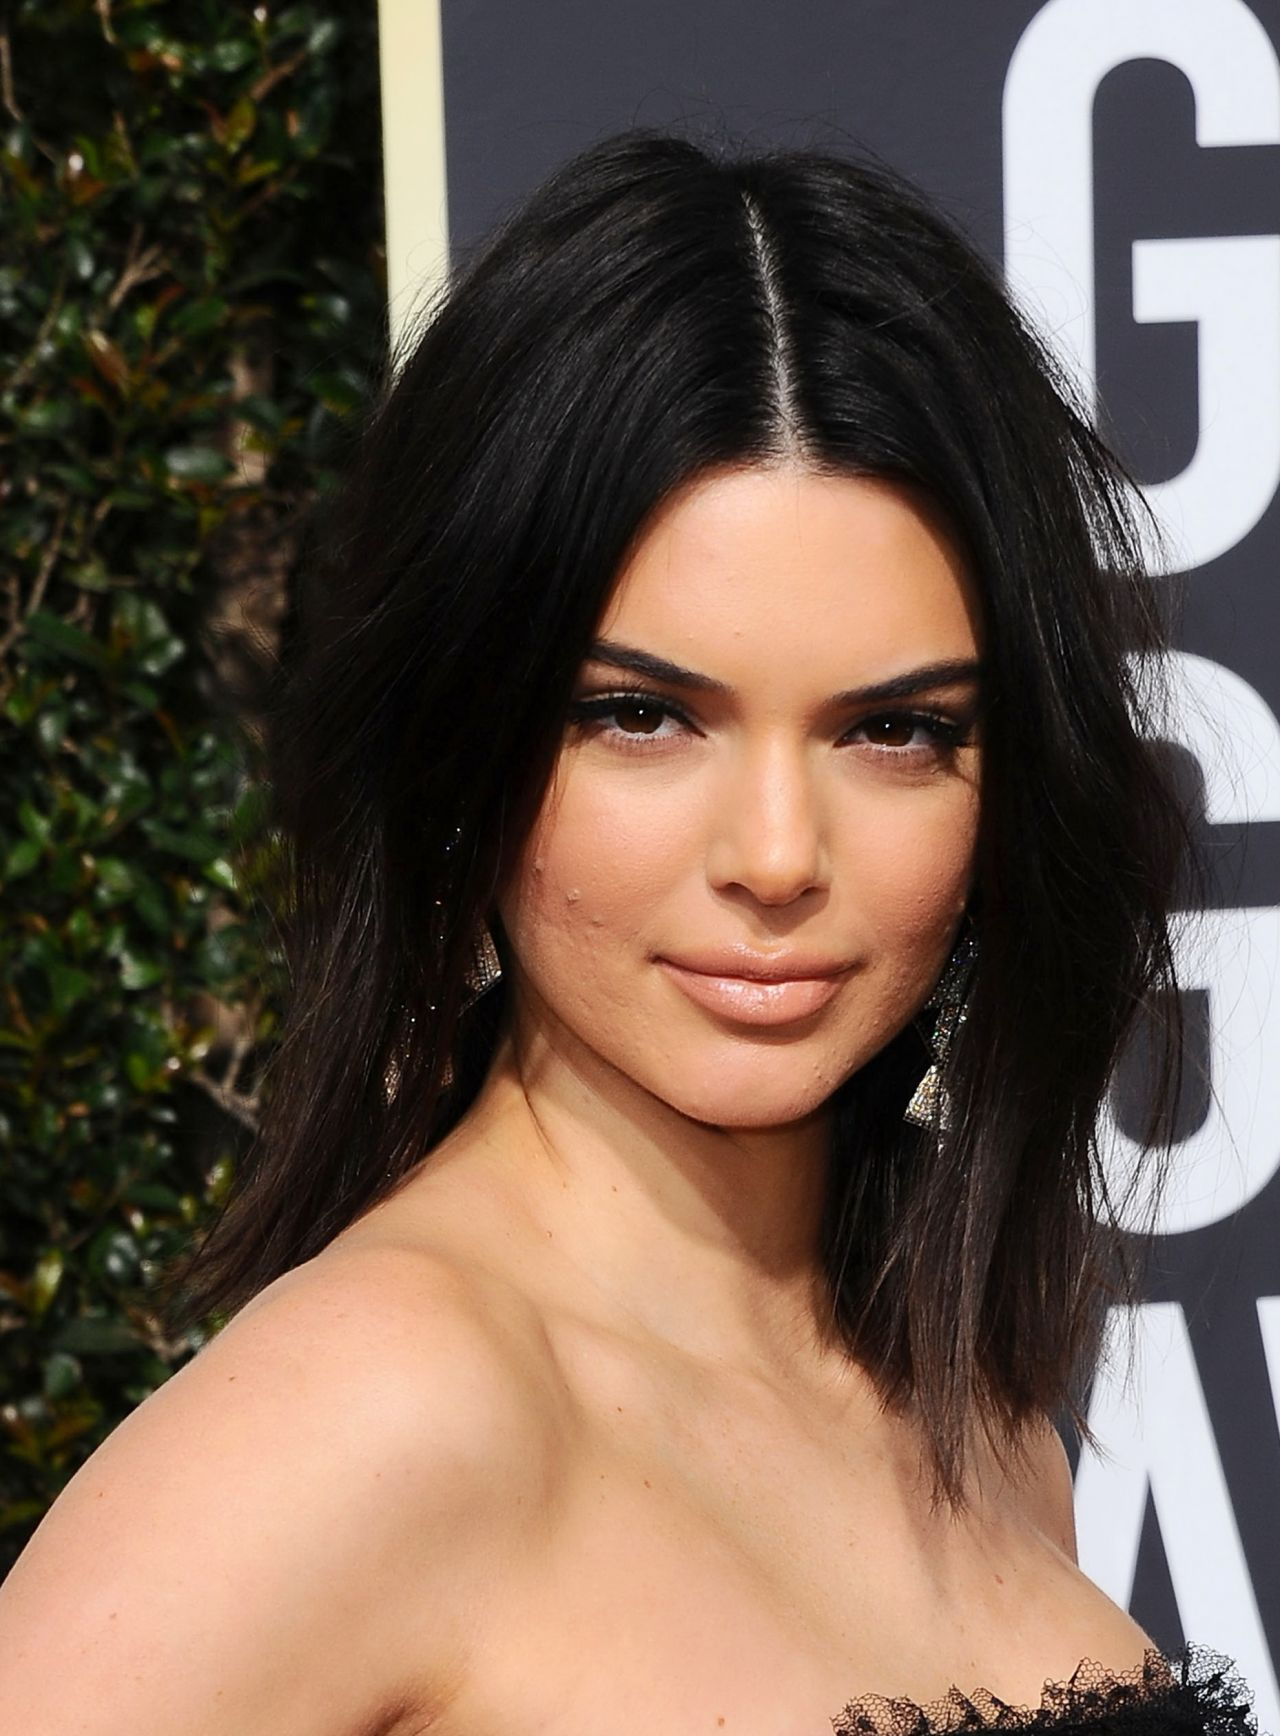 Kendall Jenner Caviar Kaspia Dinner After Pharmacy Stop: Golden Globe Awards 2018